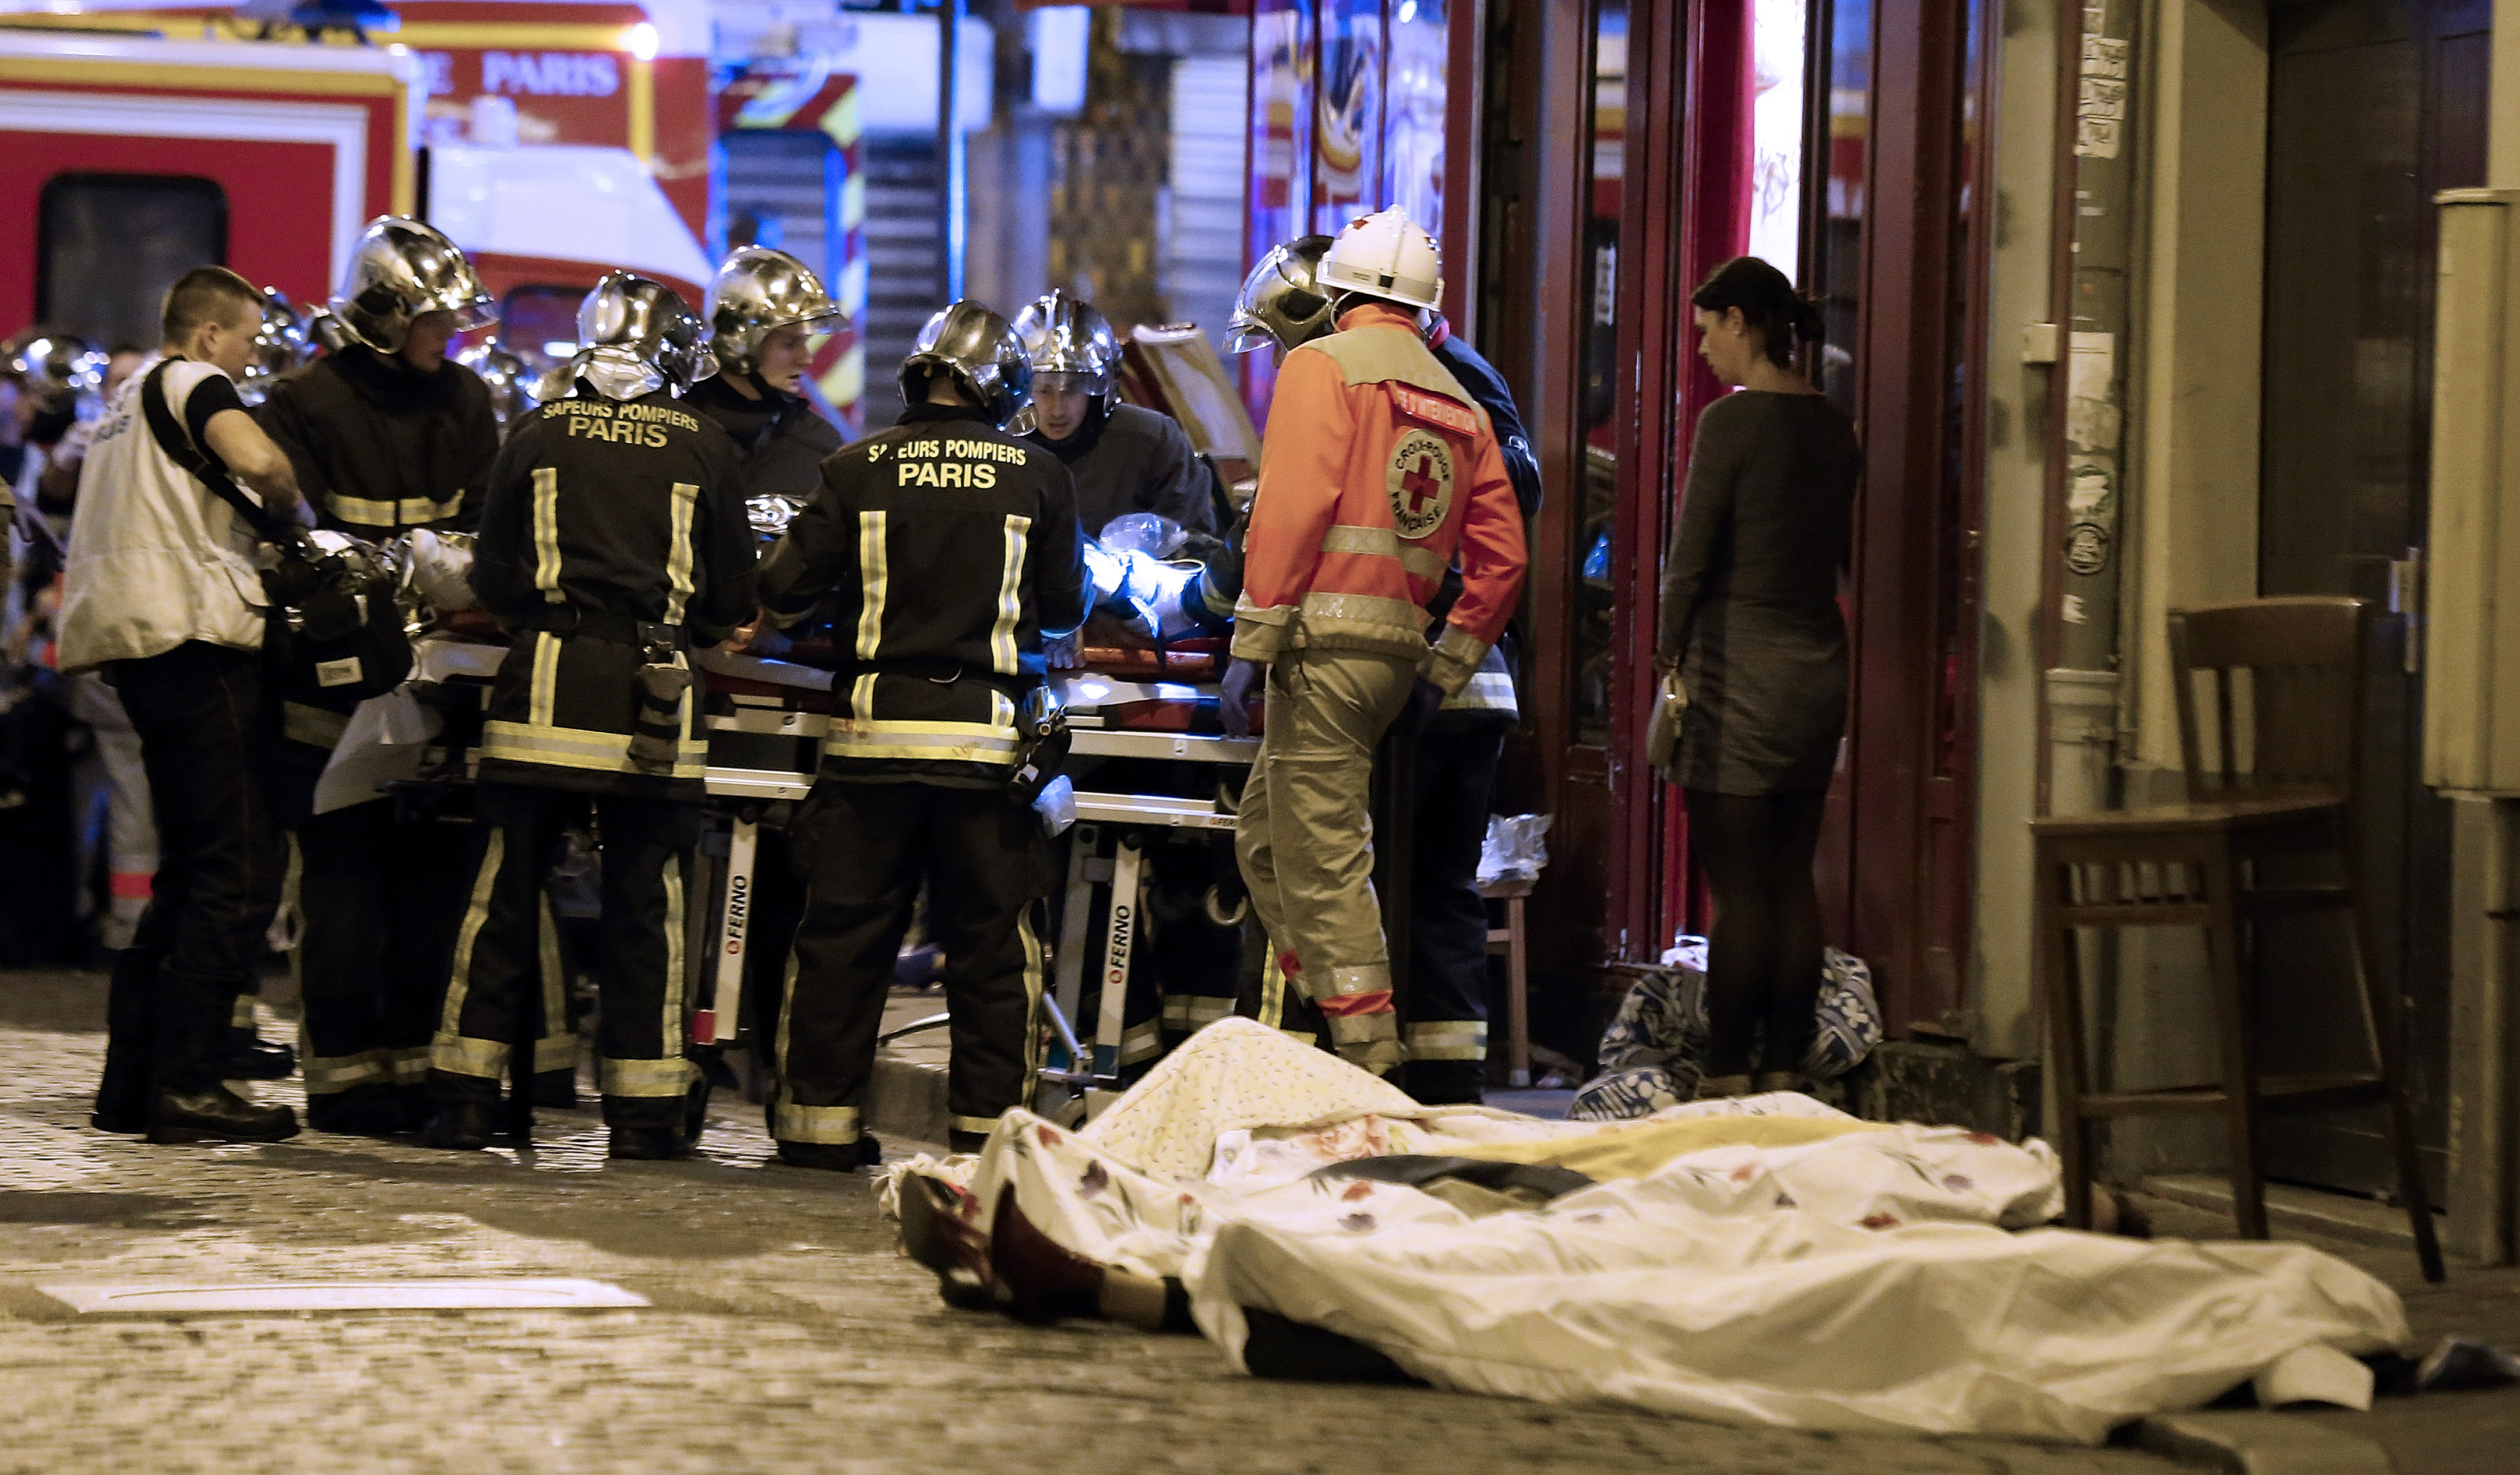 Rescue workers and victims in the 10th district of Paris. At least 120 people were killed in a series of attacks around Paris on Friday. [Jacques Brinon/AP Photo]